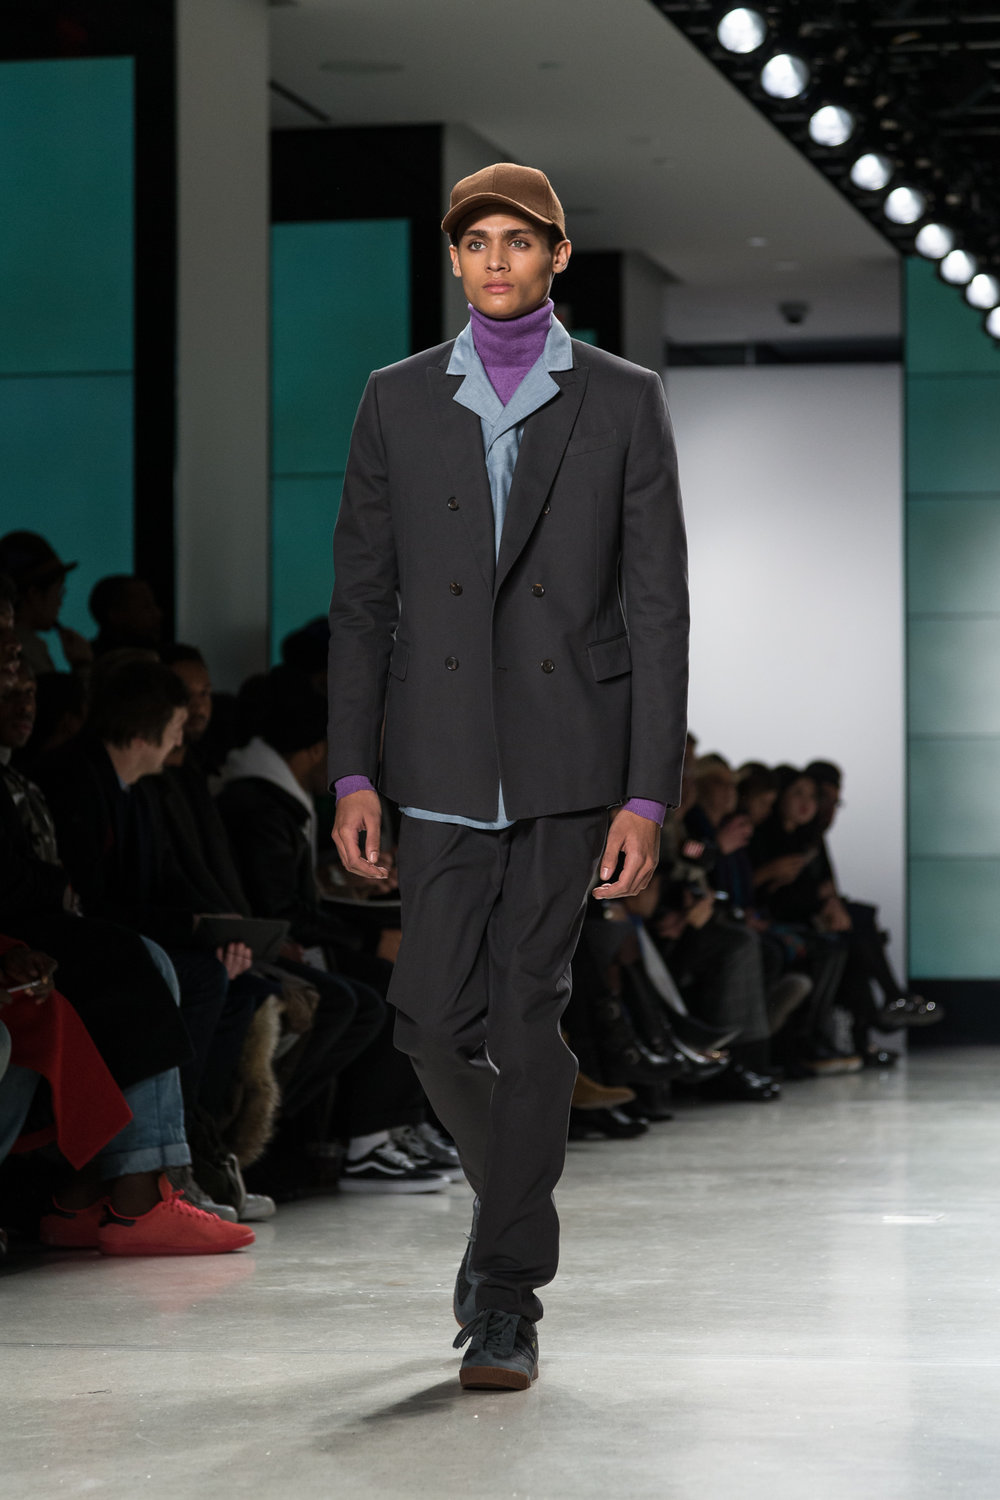 Brett Johnson_FW 2017 _Sherridon Poyer-3304.jpg